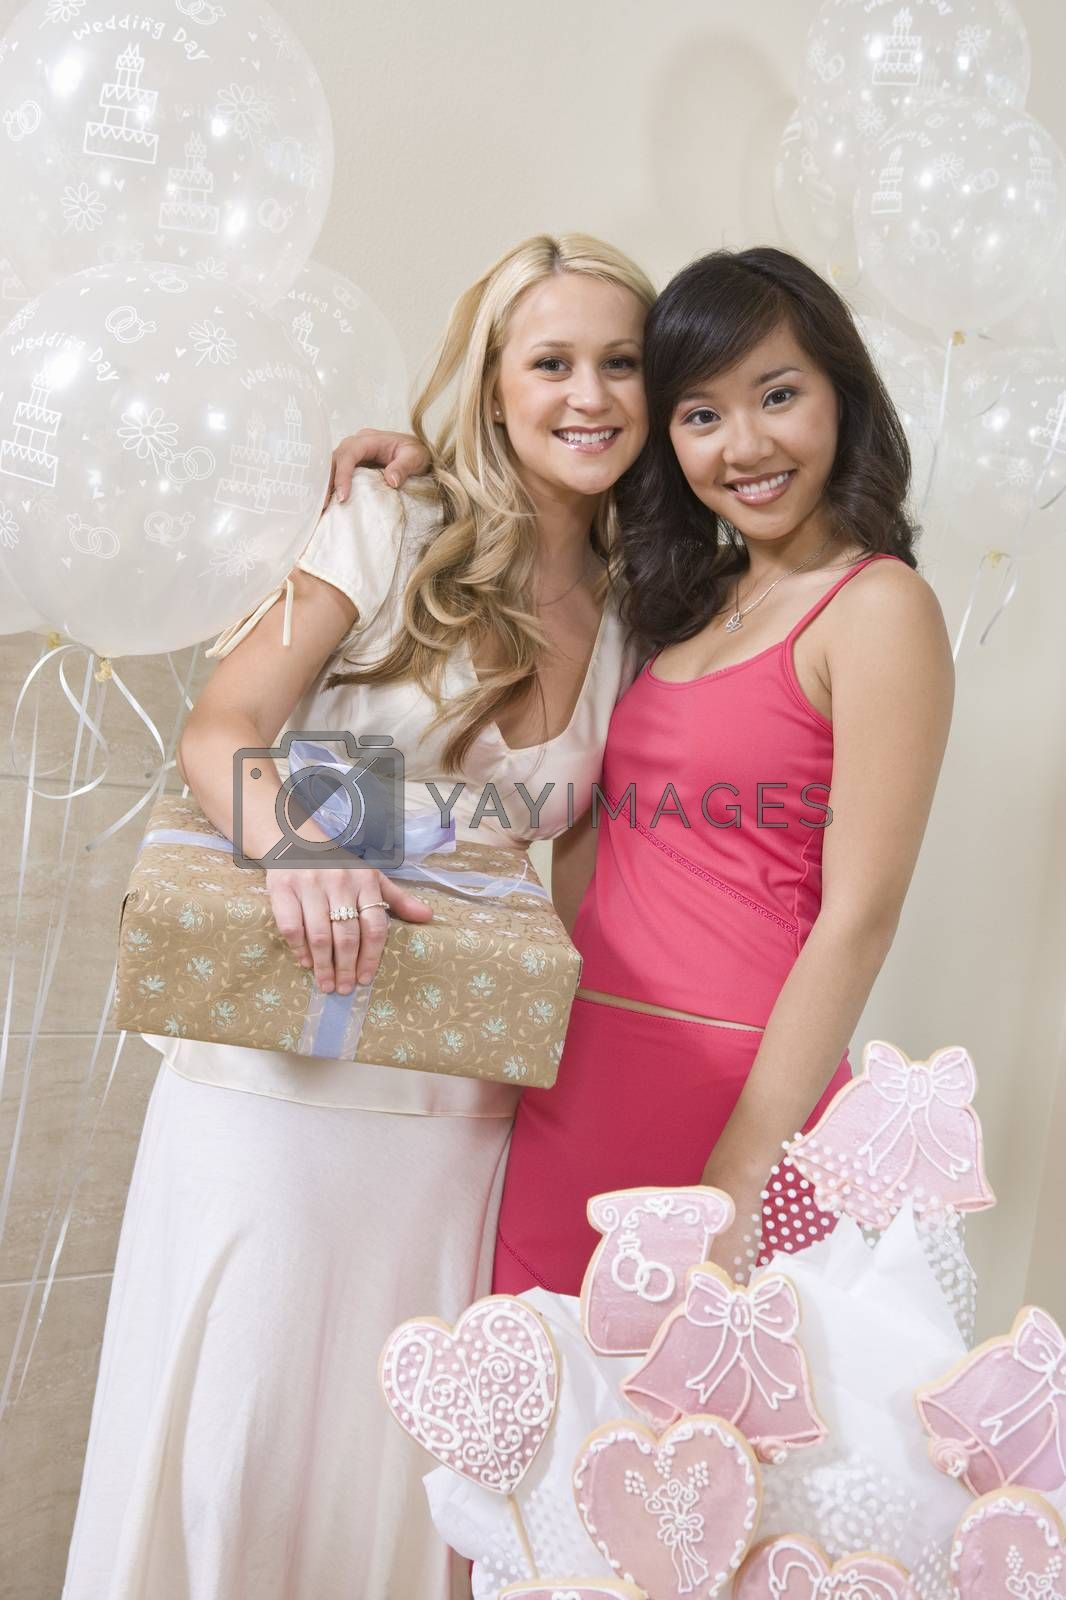 Bride Holding Gift While Standing With Friend